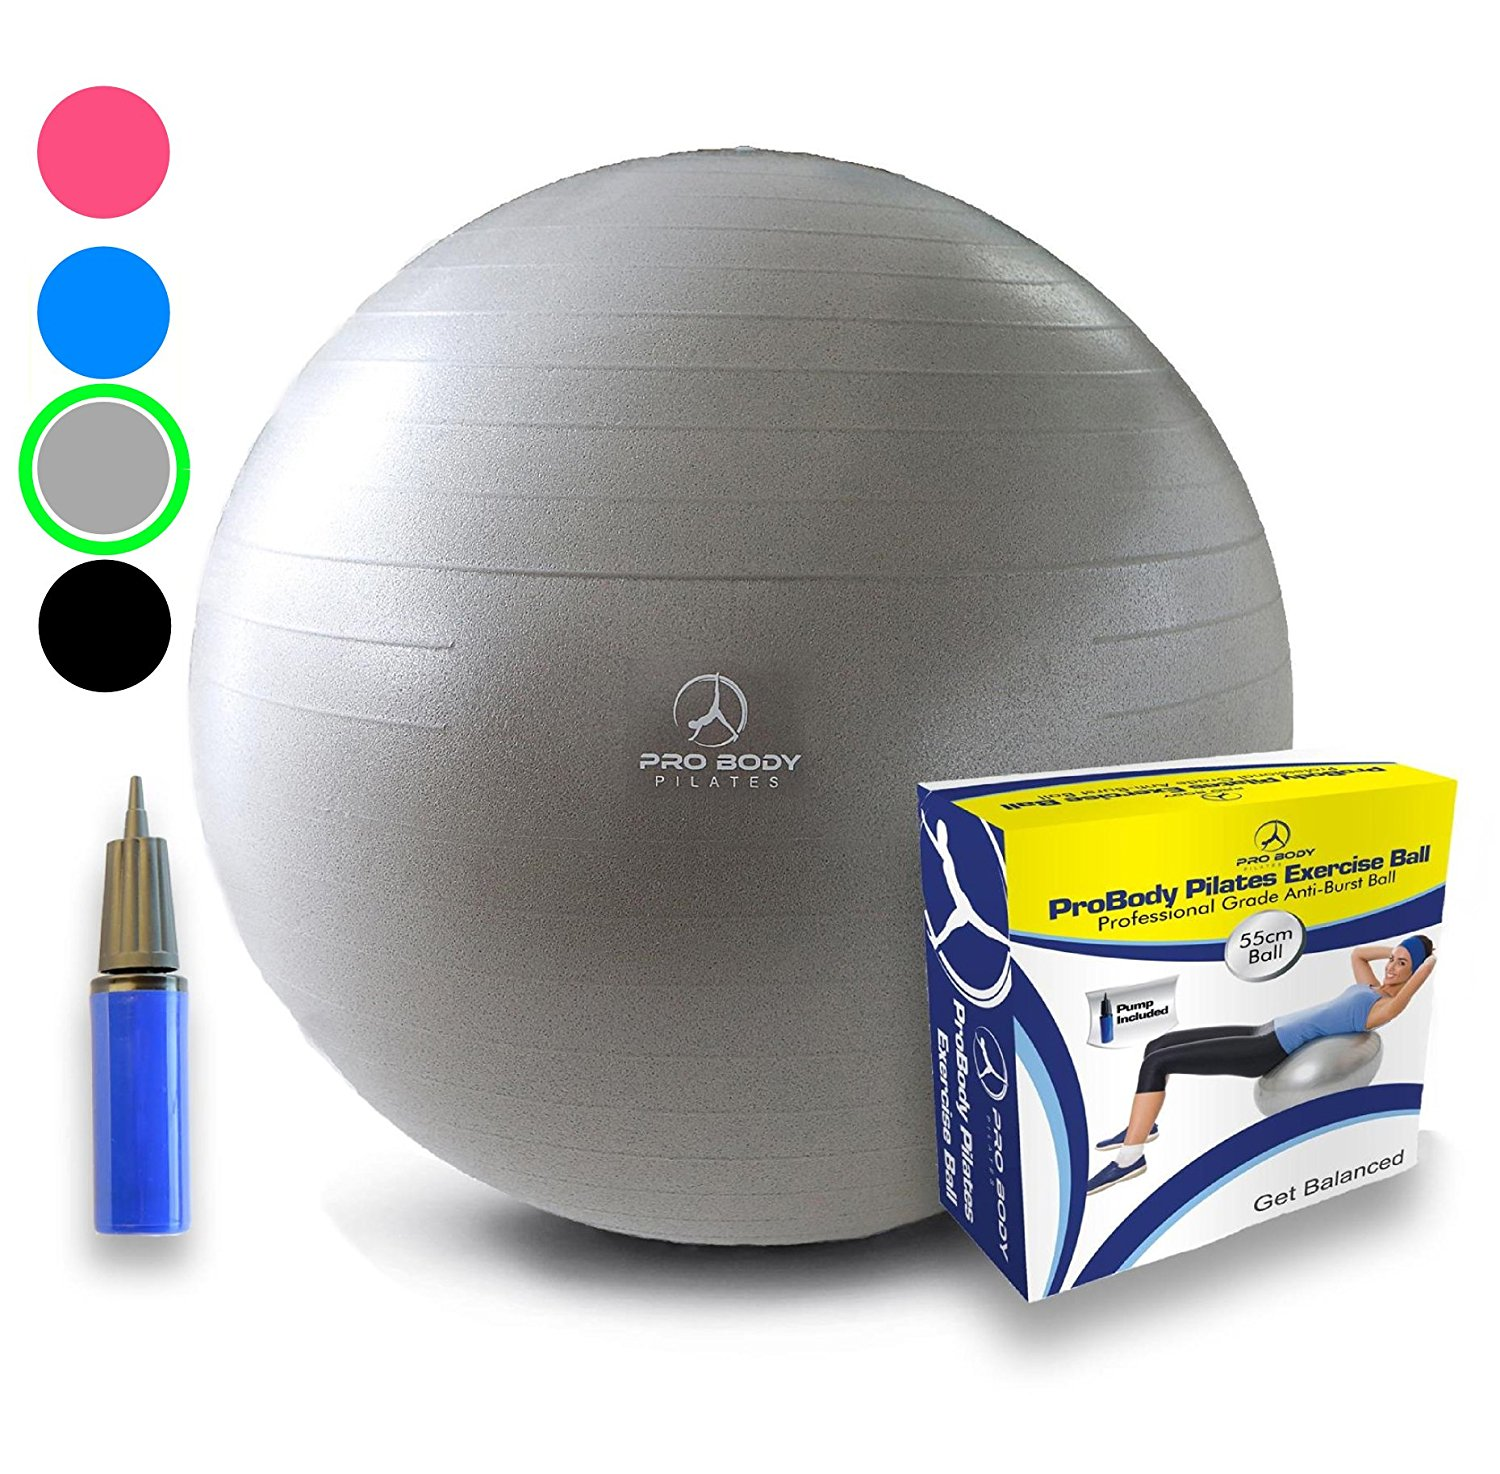 Probody Pilates Professional Grade Anti-burst Exercise Ball with Pump – Available in Several Buying Options & 3 Sizes